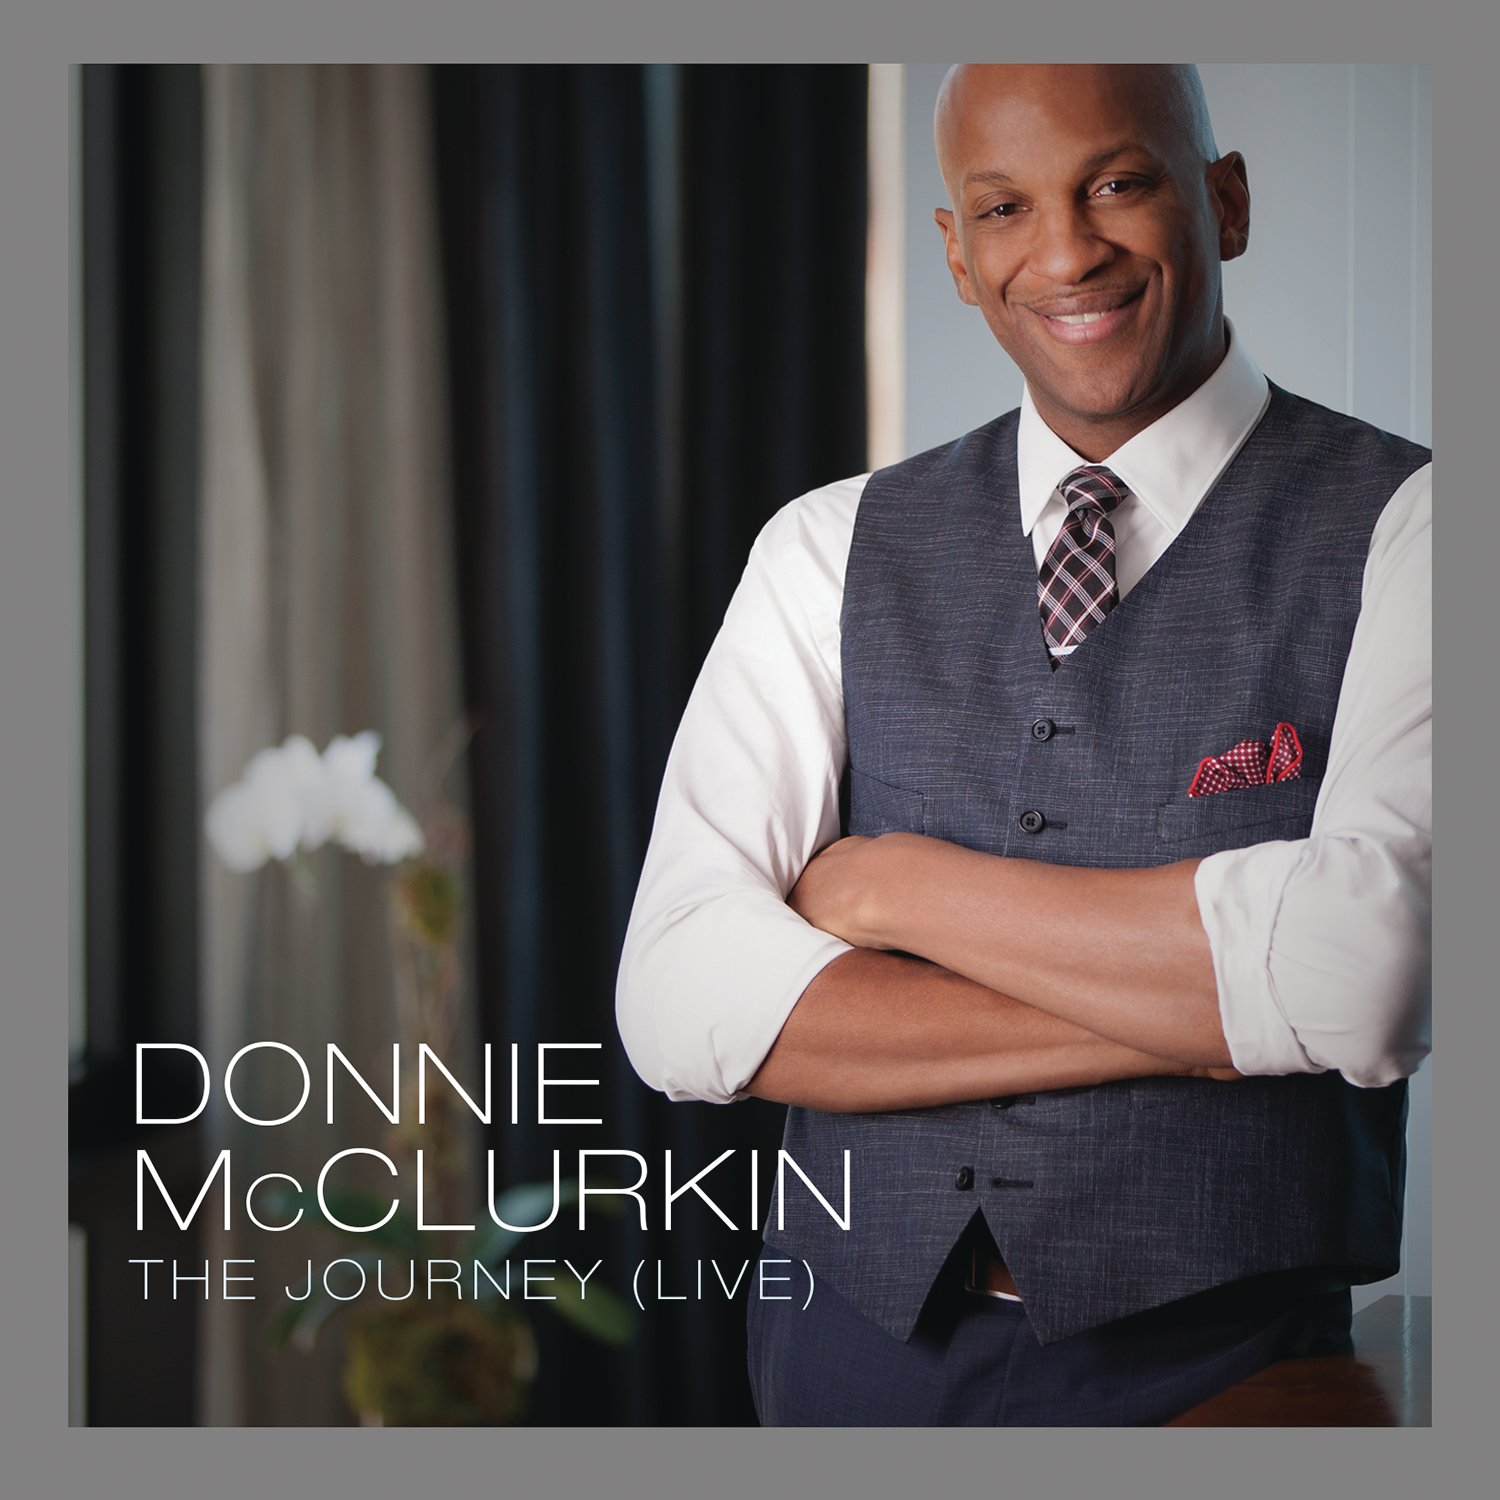 DONNIE MCCLURKIN - THE JOURNEY